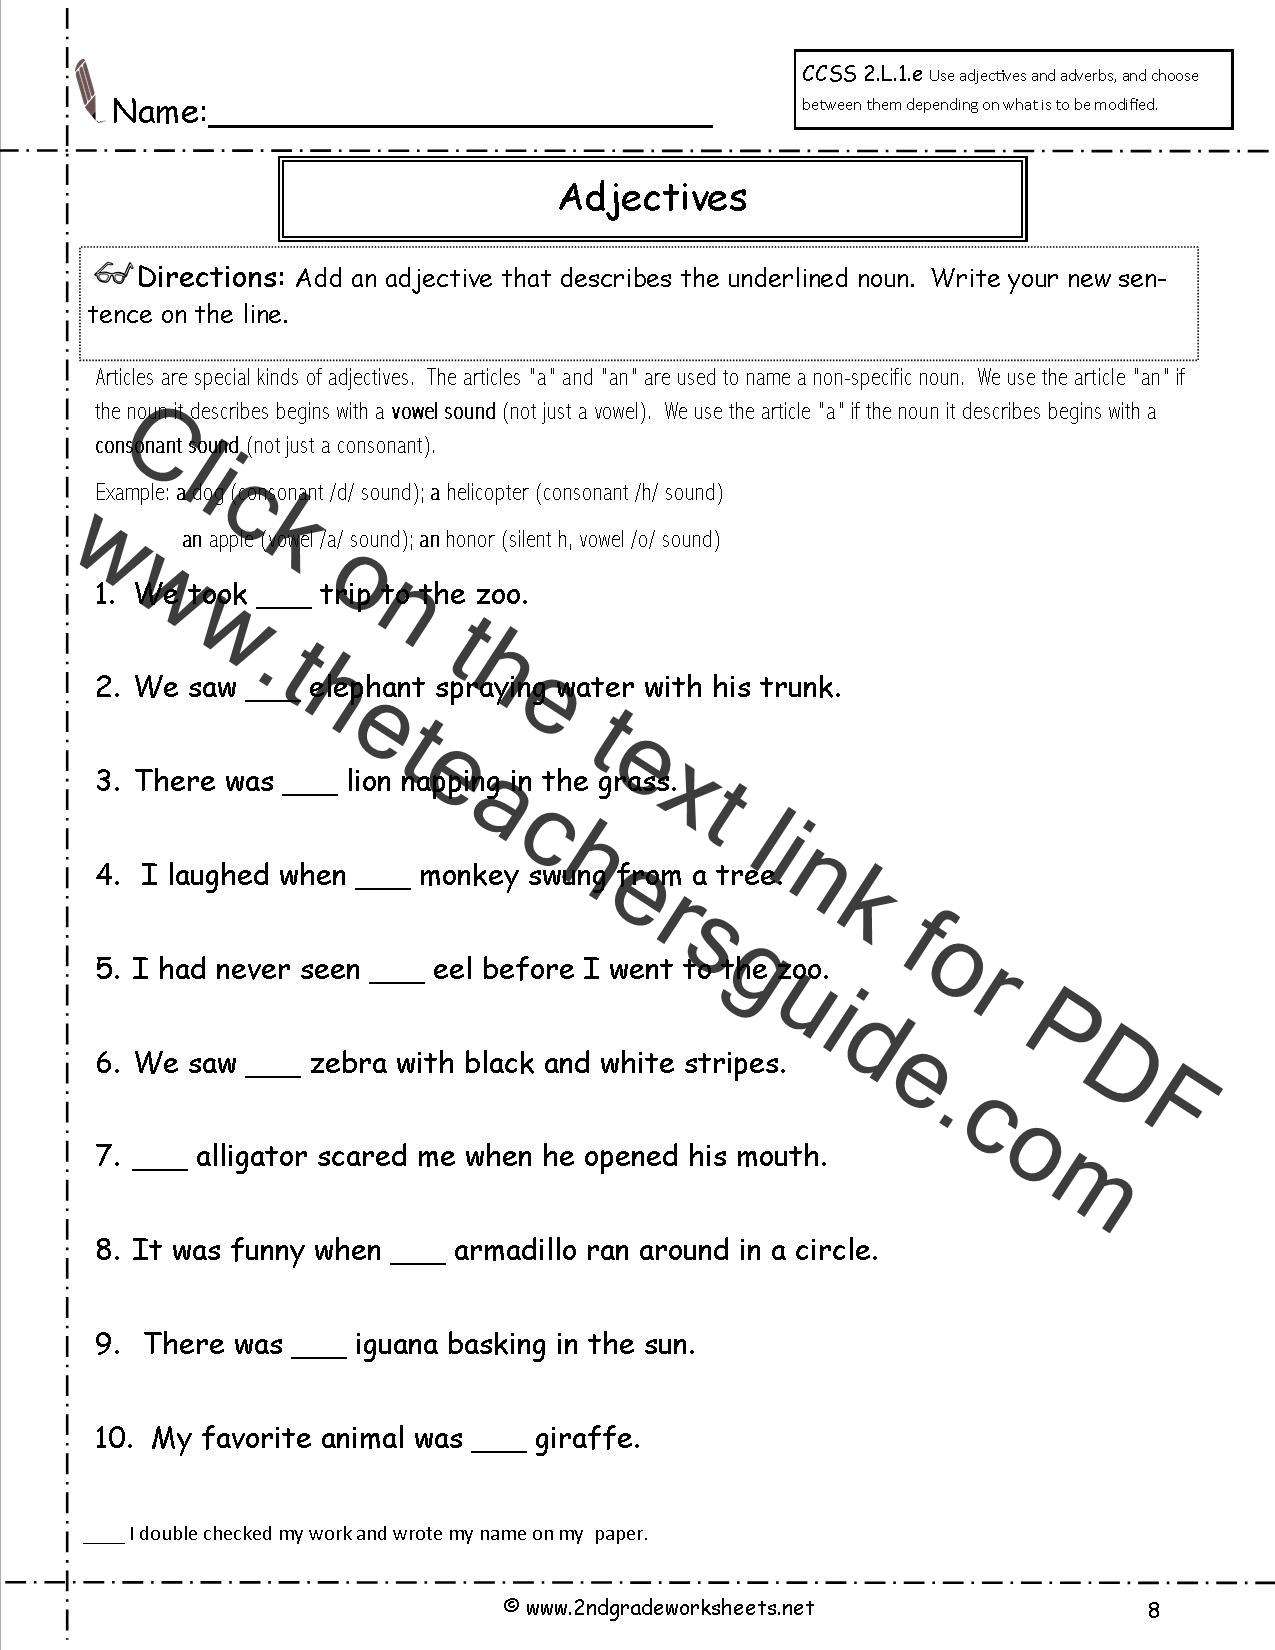 Free Using Adjectives and Adverbs Worksheets – Adjective Worksheet